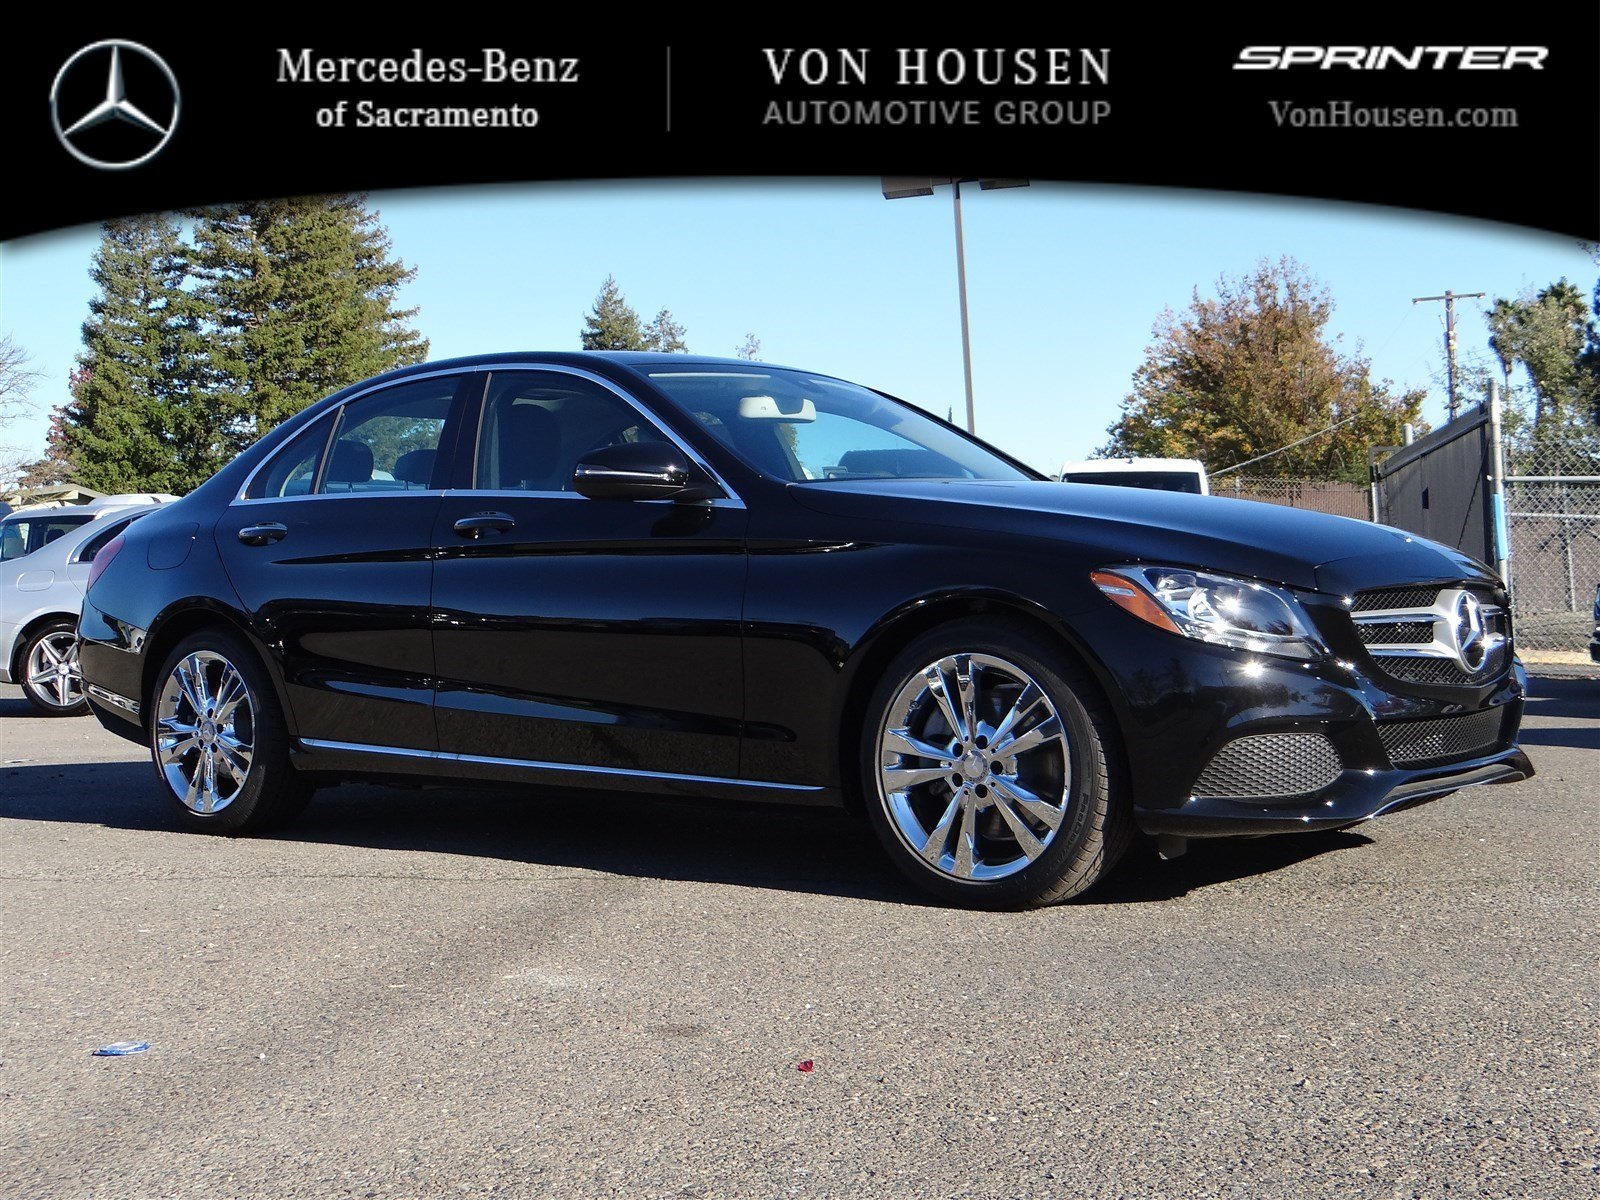 New 2016 mercedes benz c class c300w 4dr car in sacramento for 2017 mercedes benz c300w